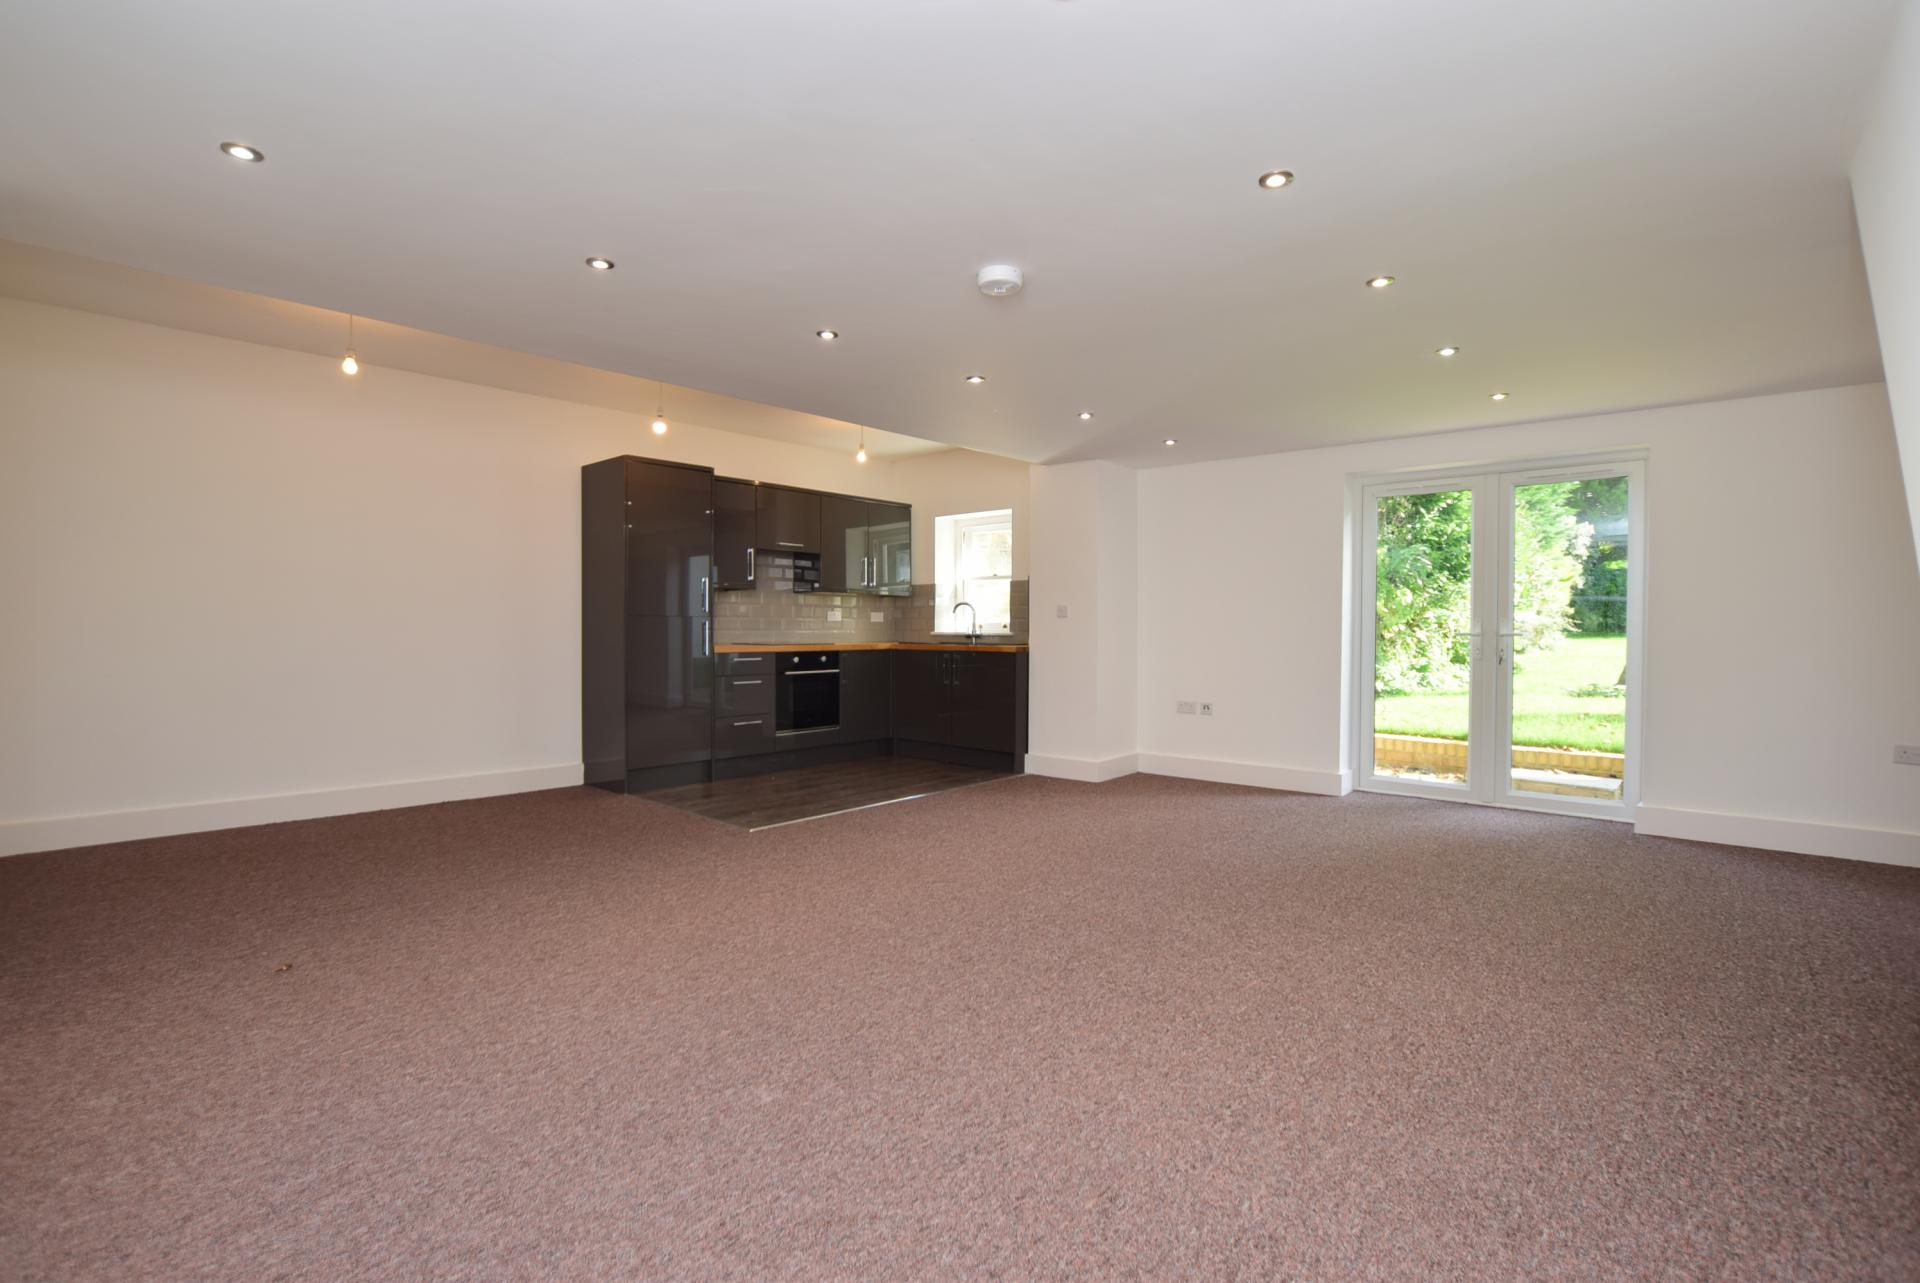 6 Bedroom Detached House For Sale In Ramsgate